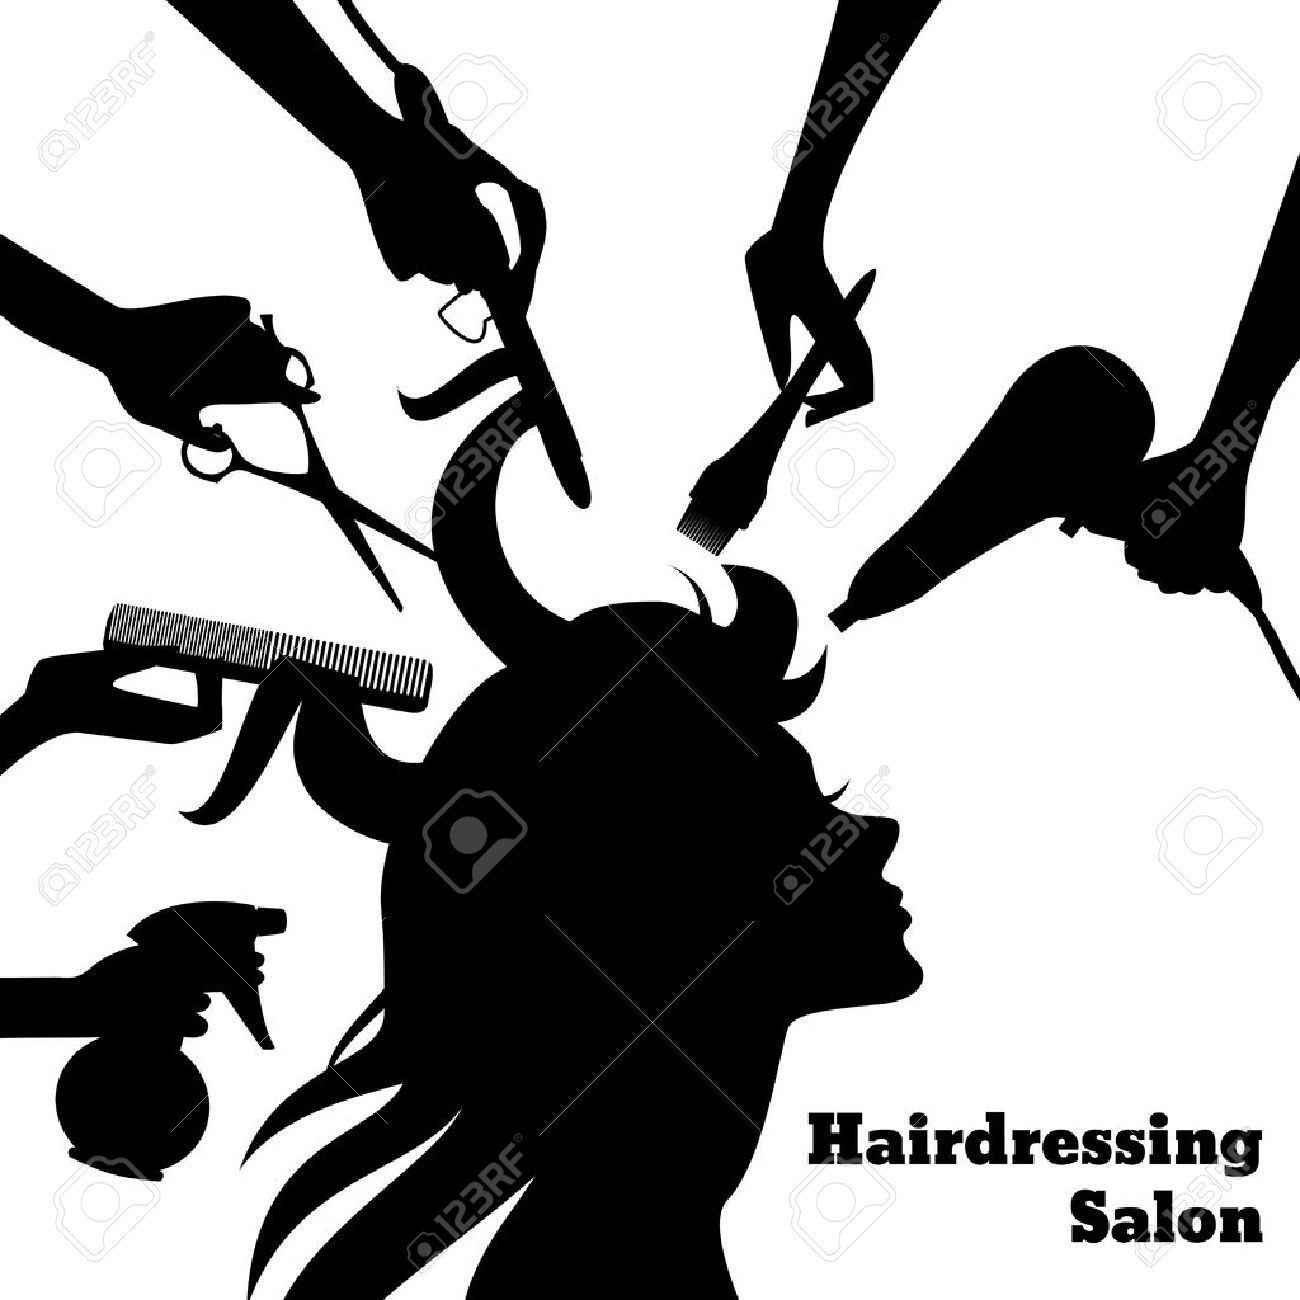 5,252 Hairdresser Brush Stock Vector Illustration And Royalty Free ...